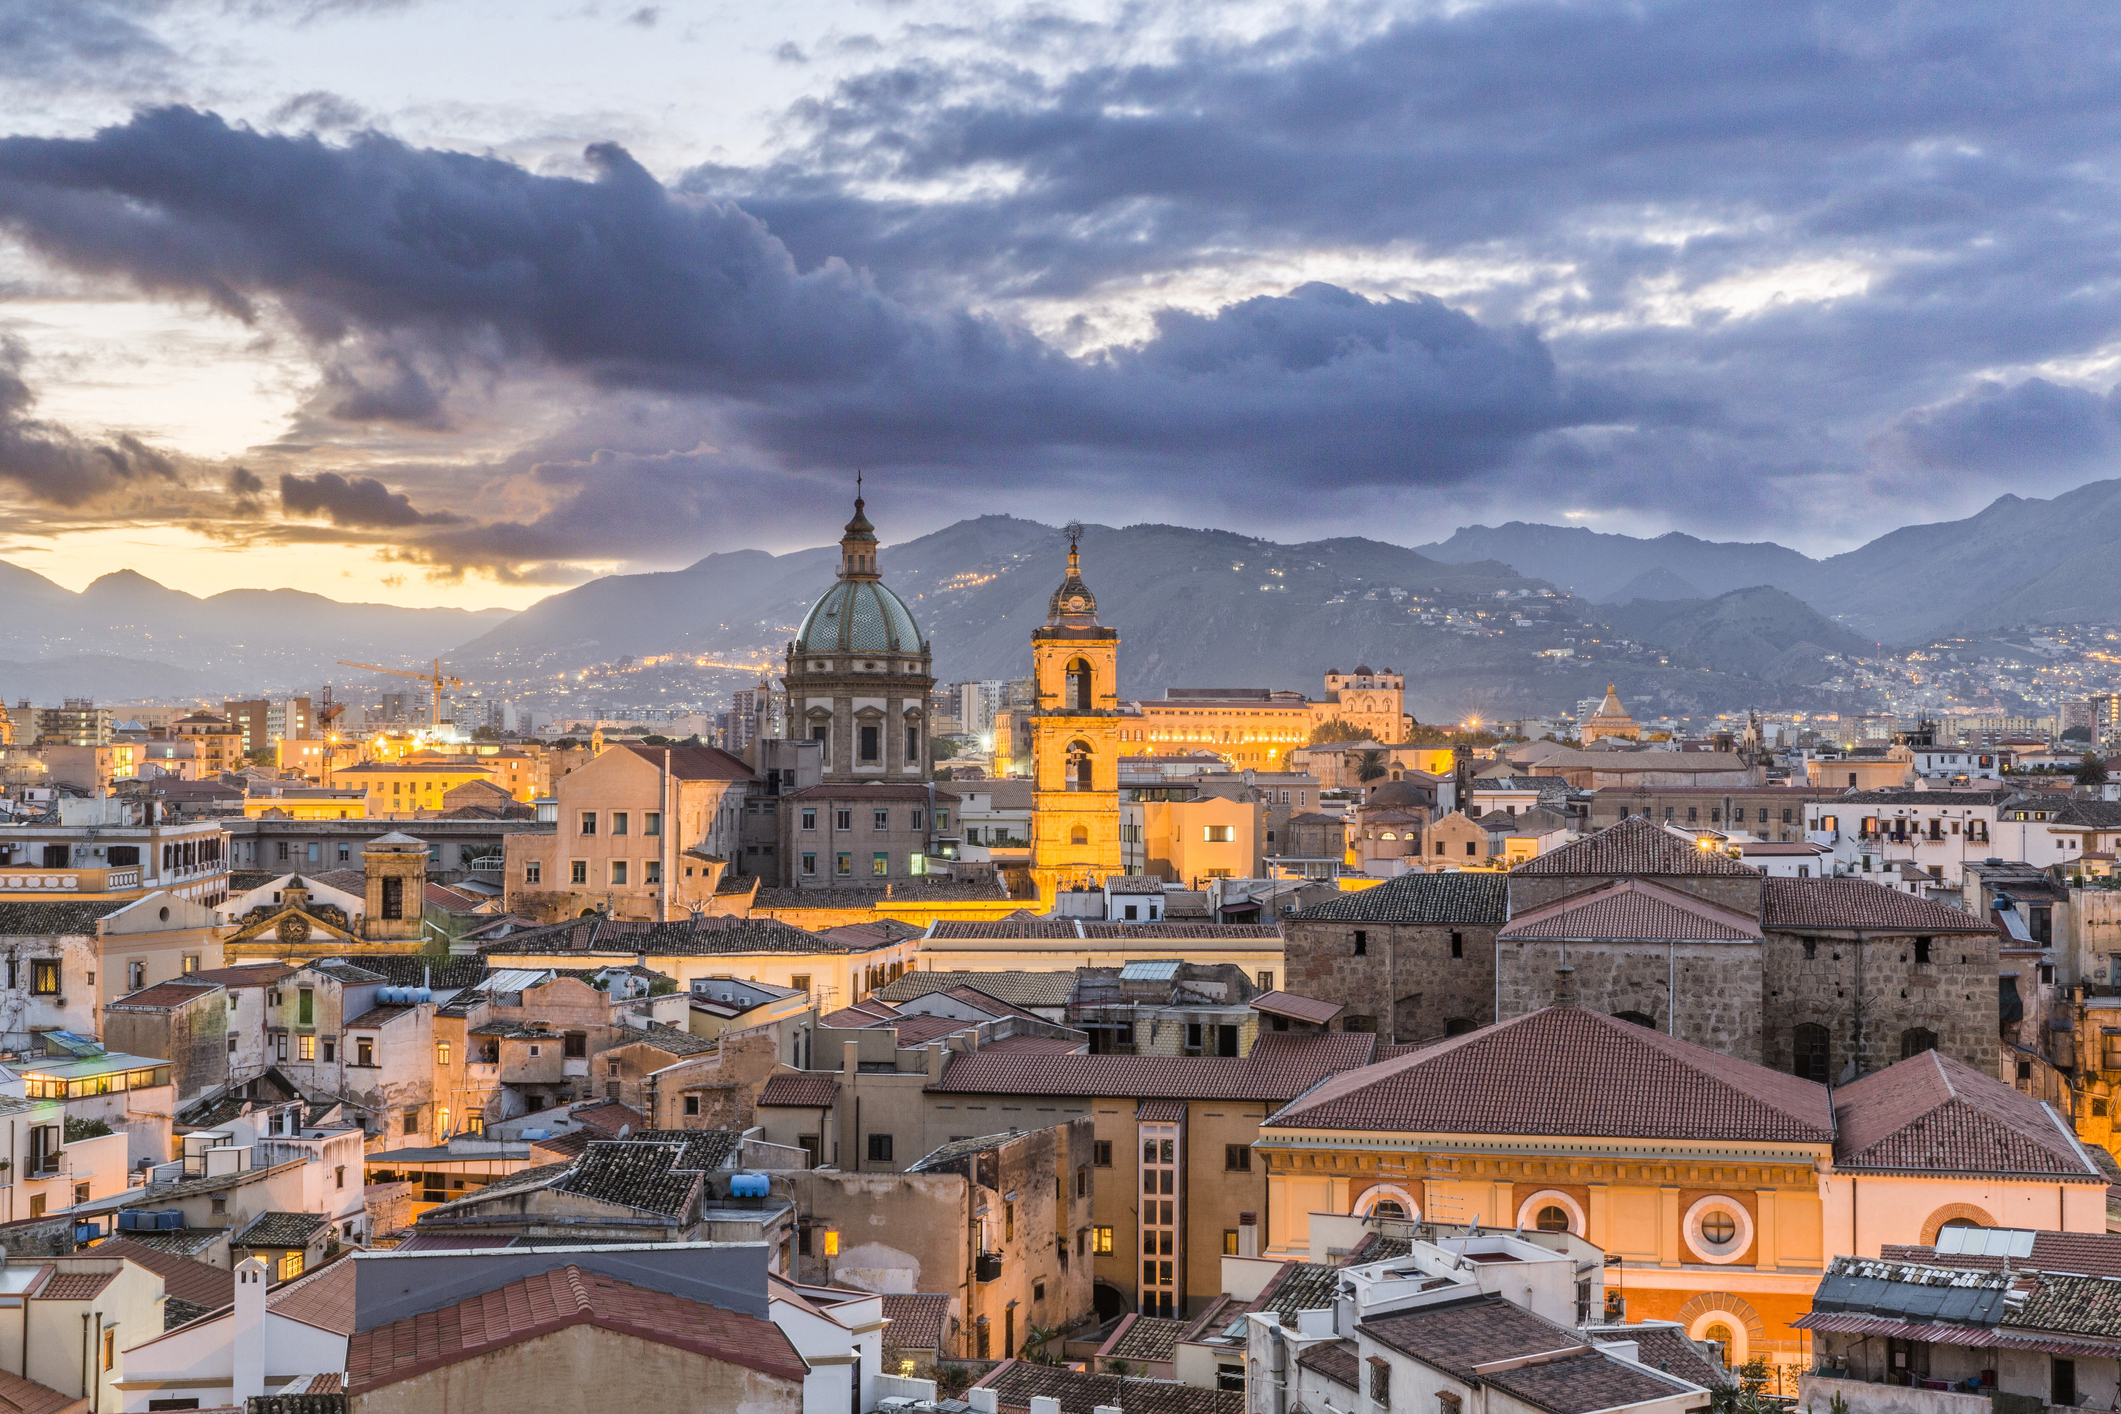 Evening view of Palermo skyline